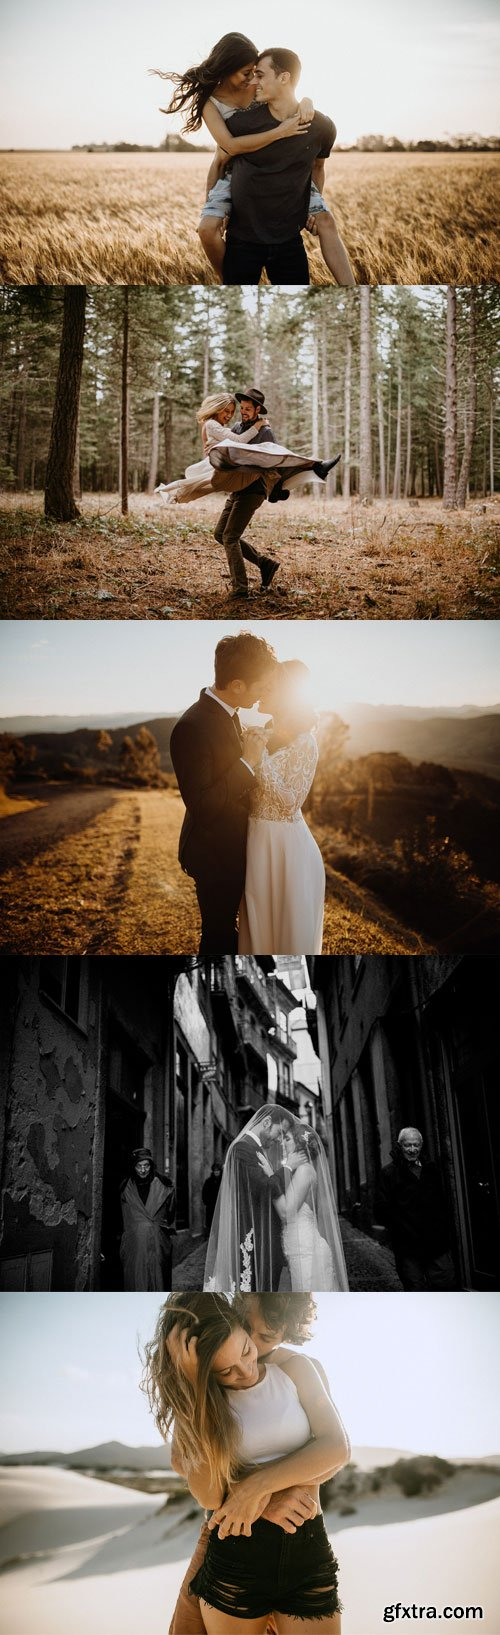 Beloved Stories - Beauty of Nature Wedding Preset Collection